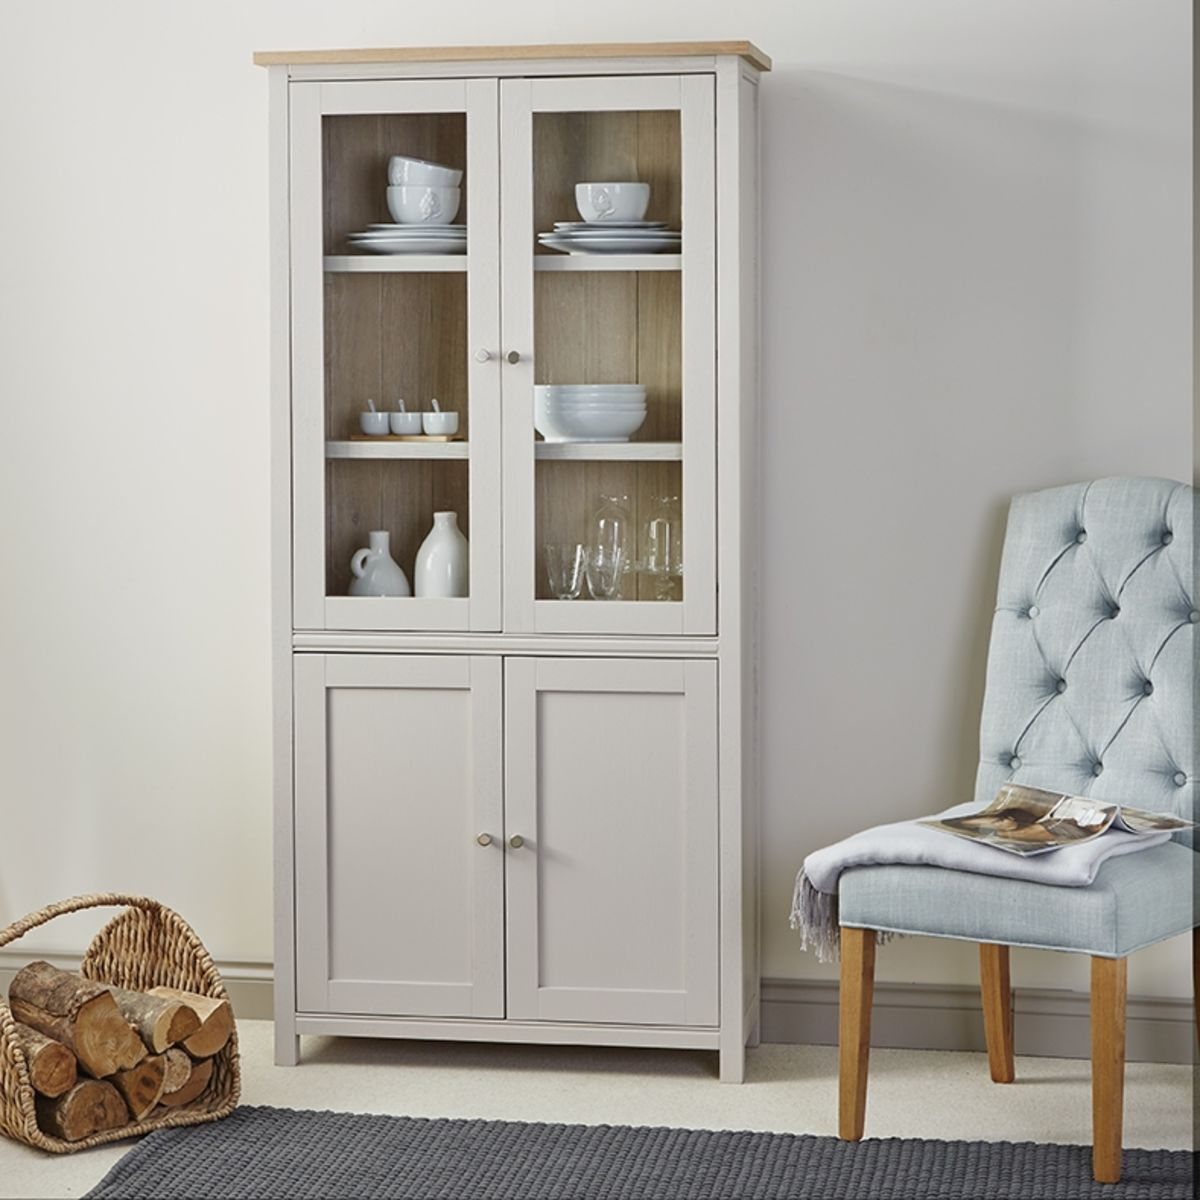 Furniture Store Stamford Ct: Rushbury Painted Display Cabinet Was £999.00 Now £899.00